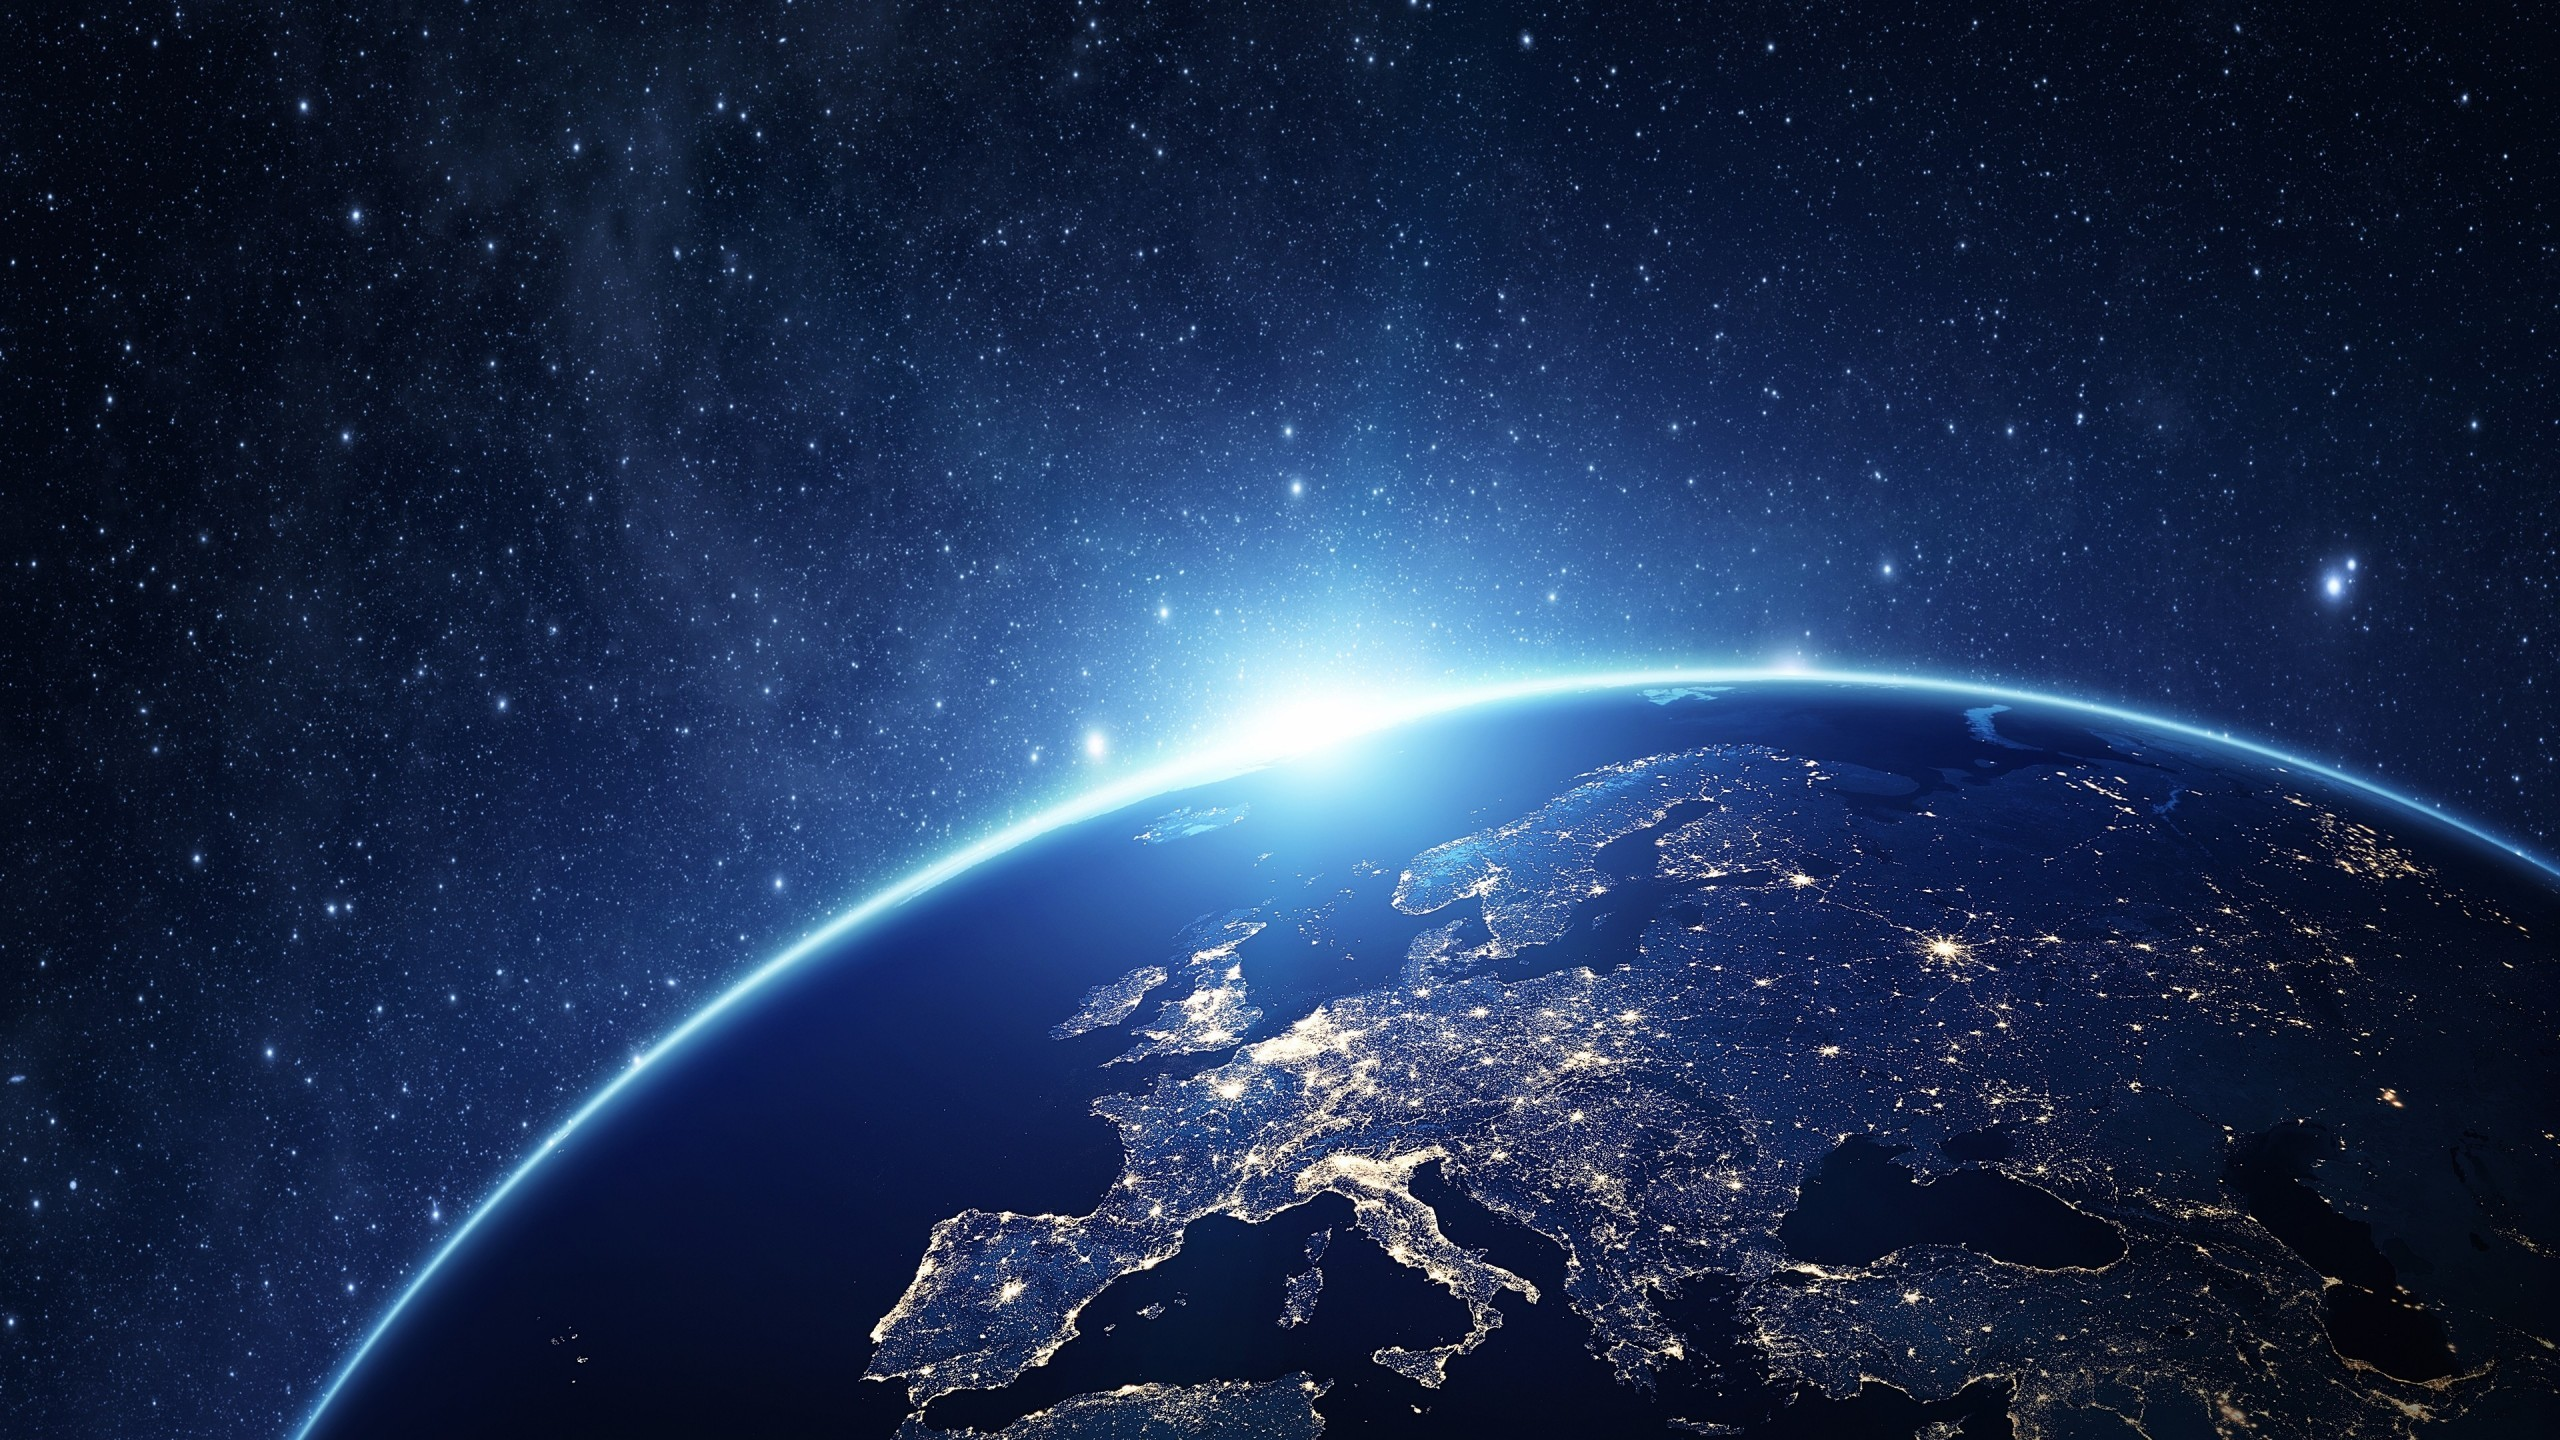 Download Earth, Stars, Lights, Galaxy Wallpapers. Earth, Stars,  Lights, Galaxy